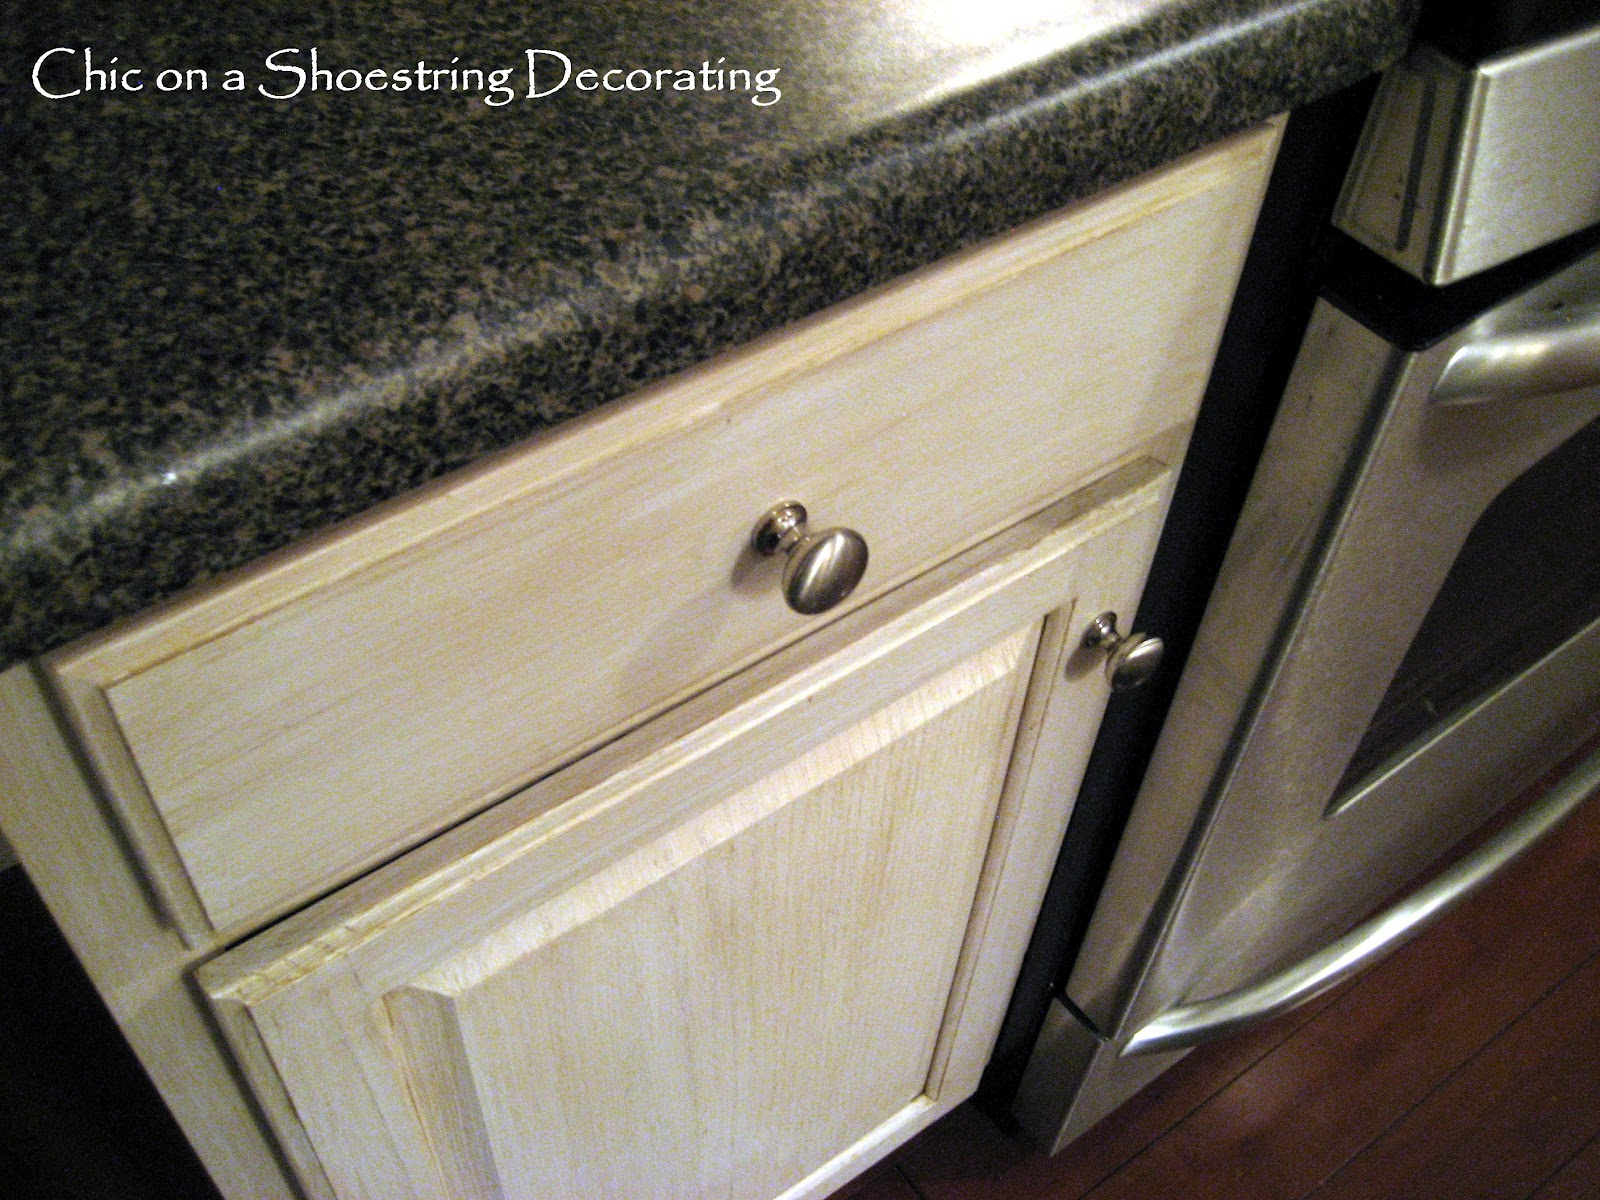 Kitchen Cabinets Knobs Or Pulls Chic On A Shoestring Decorating How To Change Your